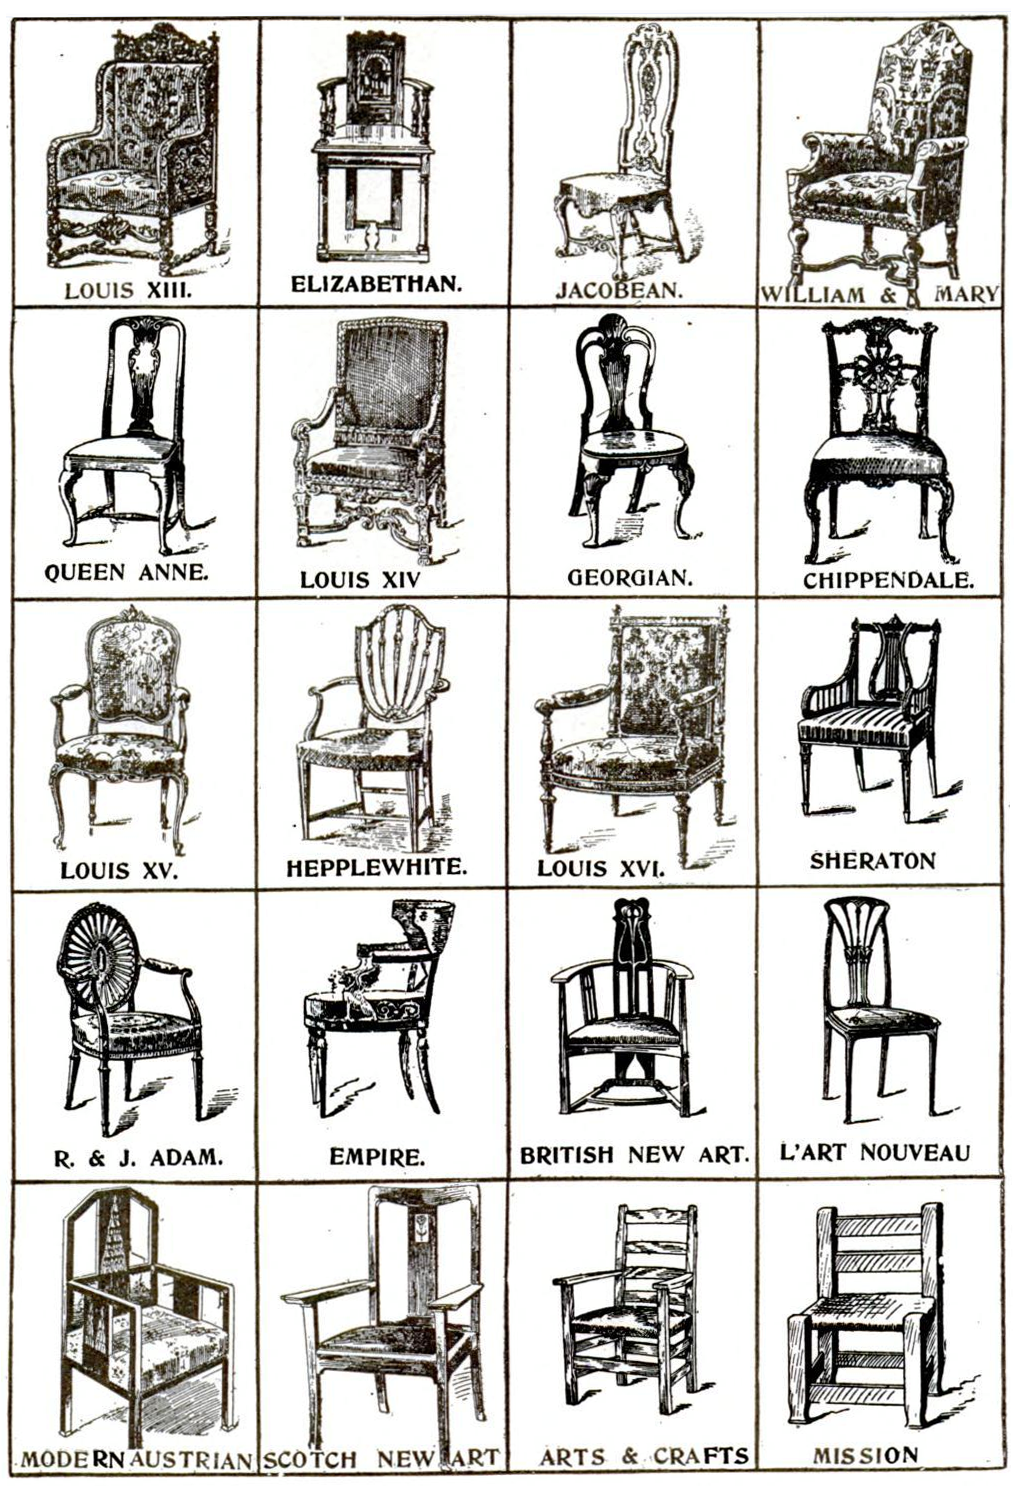 There Are So Many Diffe Kinds Of Chairs Here Is A Rundown Some